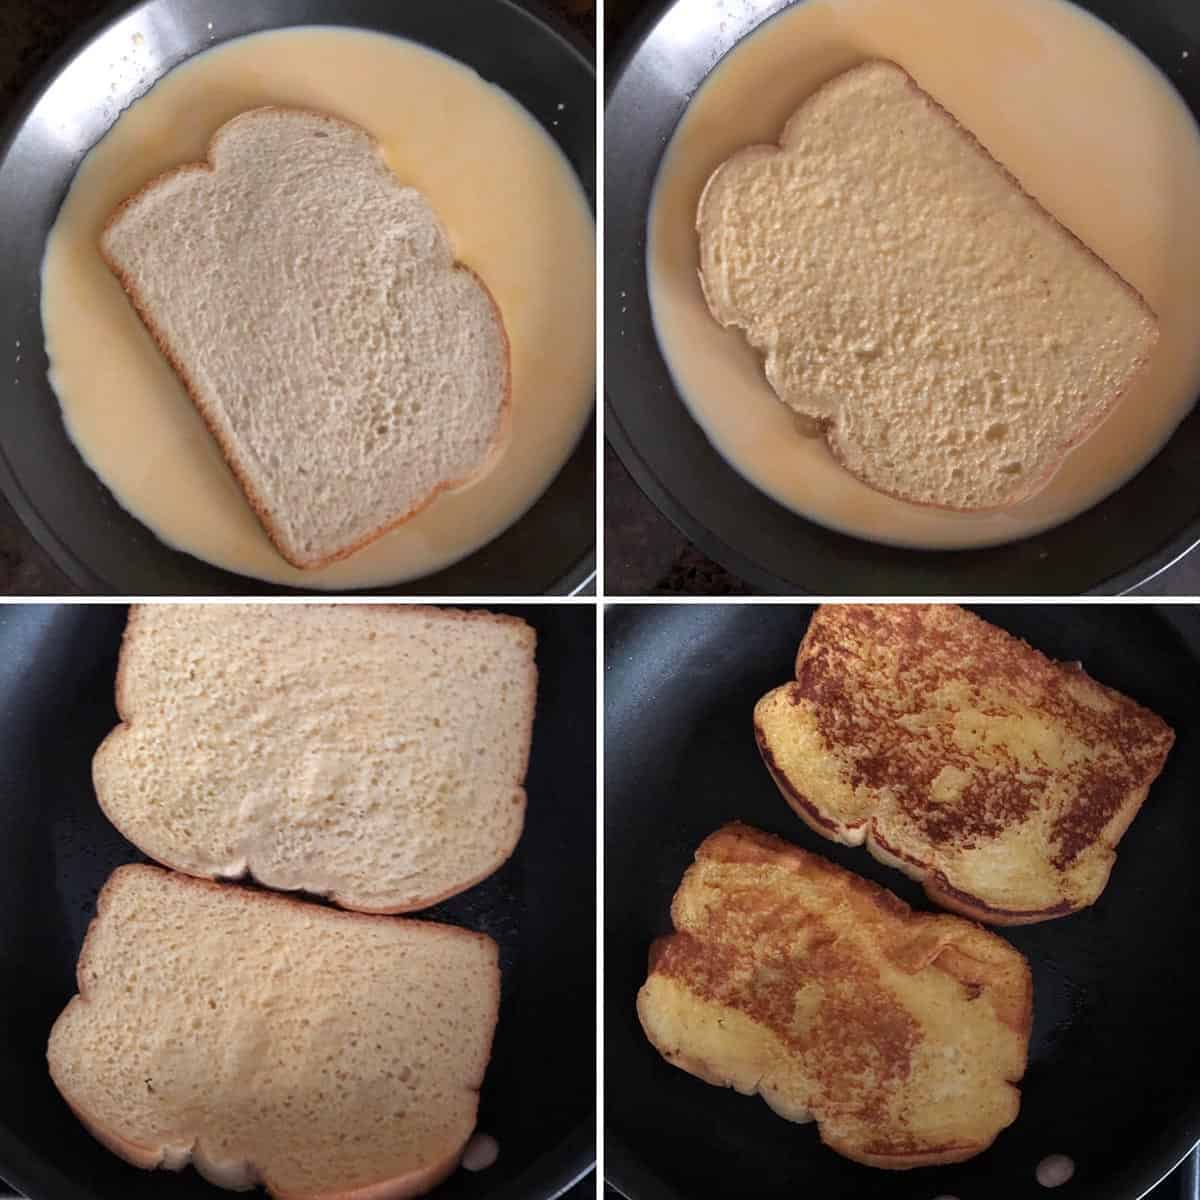 Bread dipped in custard and cooked on griddle until golden brown